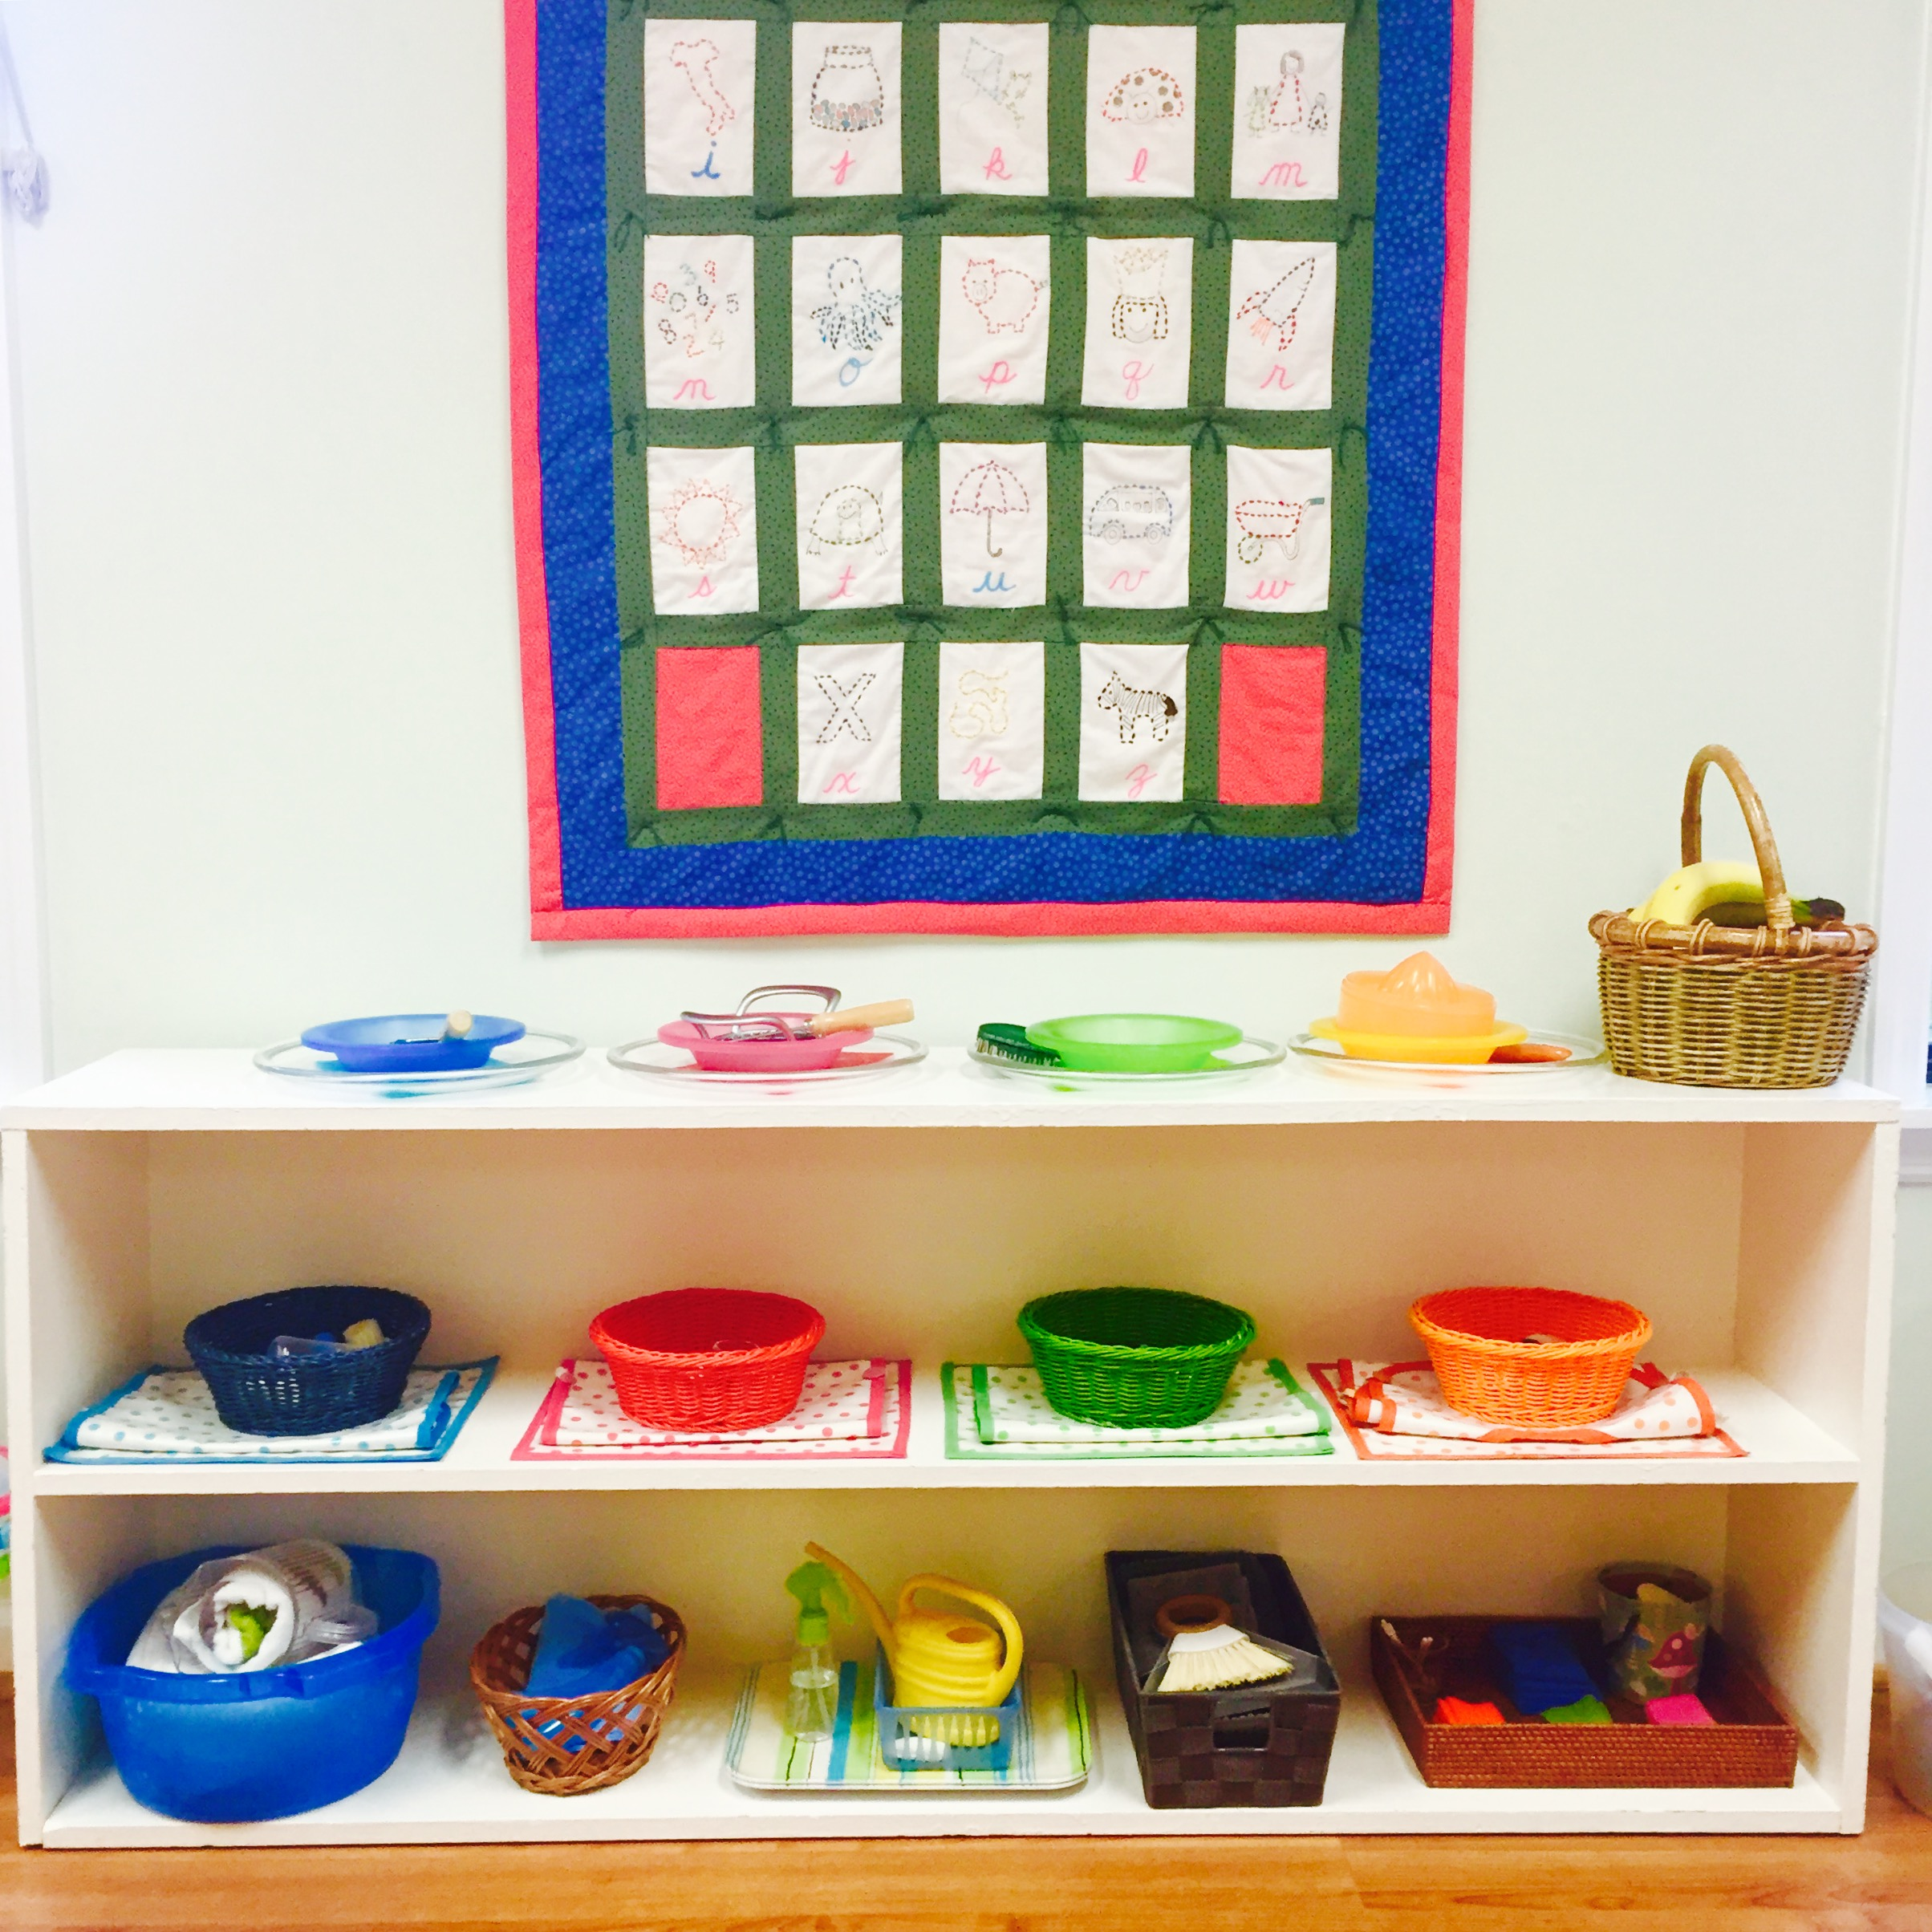 The beauty and simplicity of the Practical Life shelves invite children of all ages to take care of their classroom.